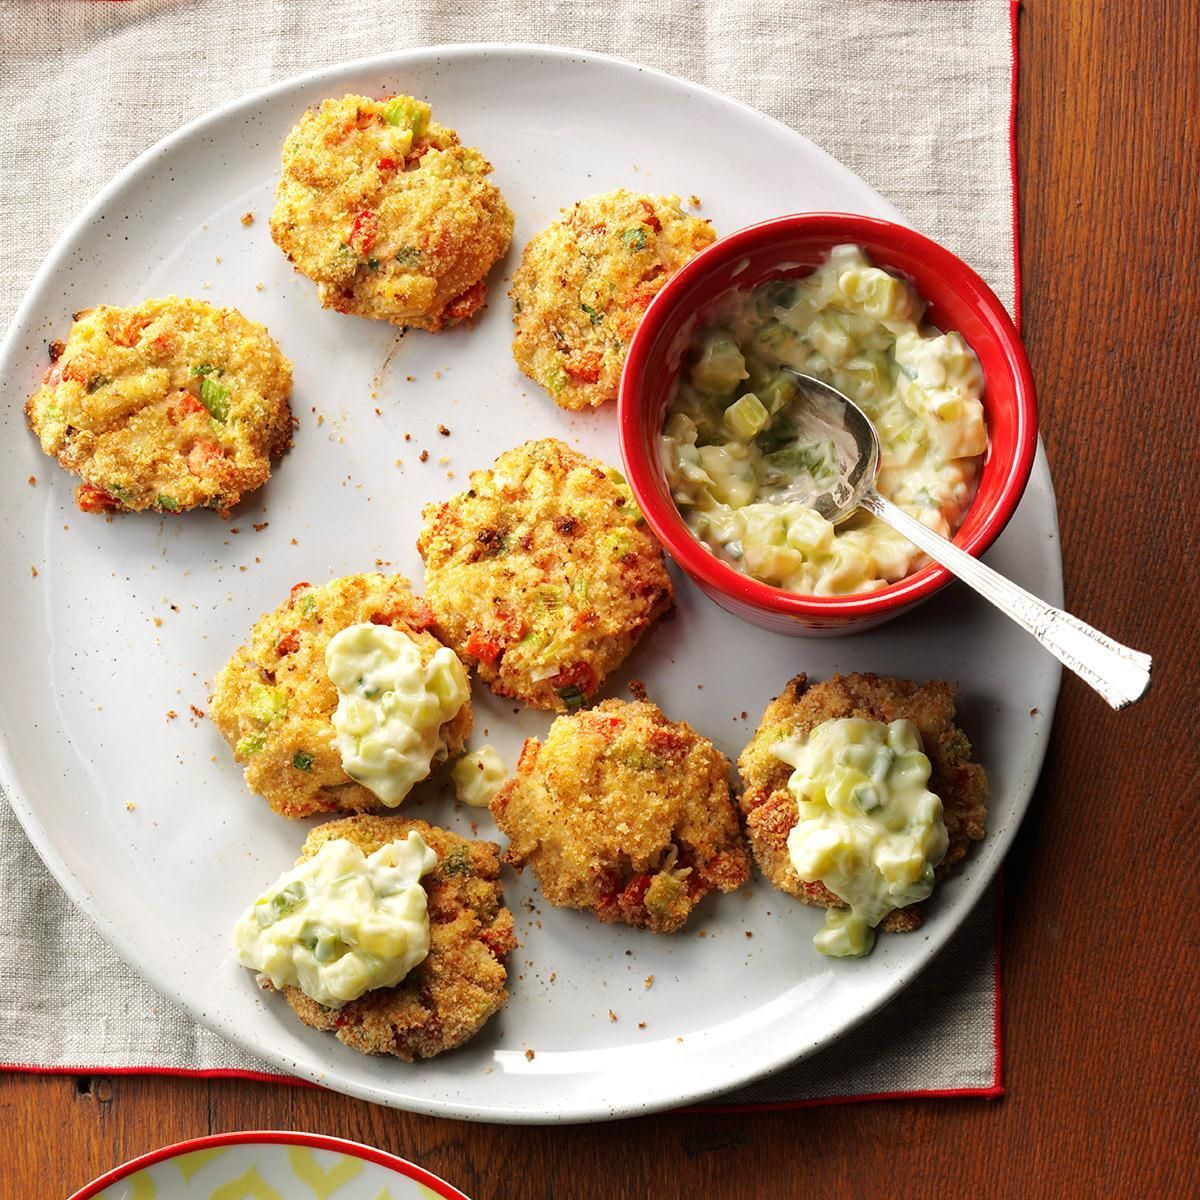 Airfryer wasabi crab cakes recipe in 2020 crab cakes